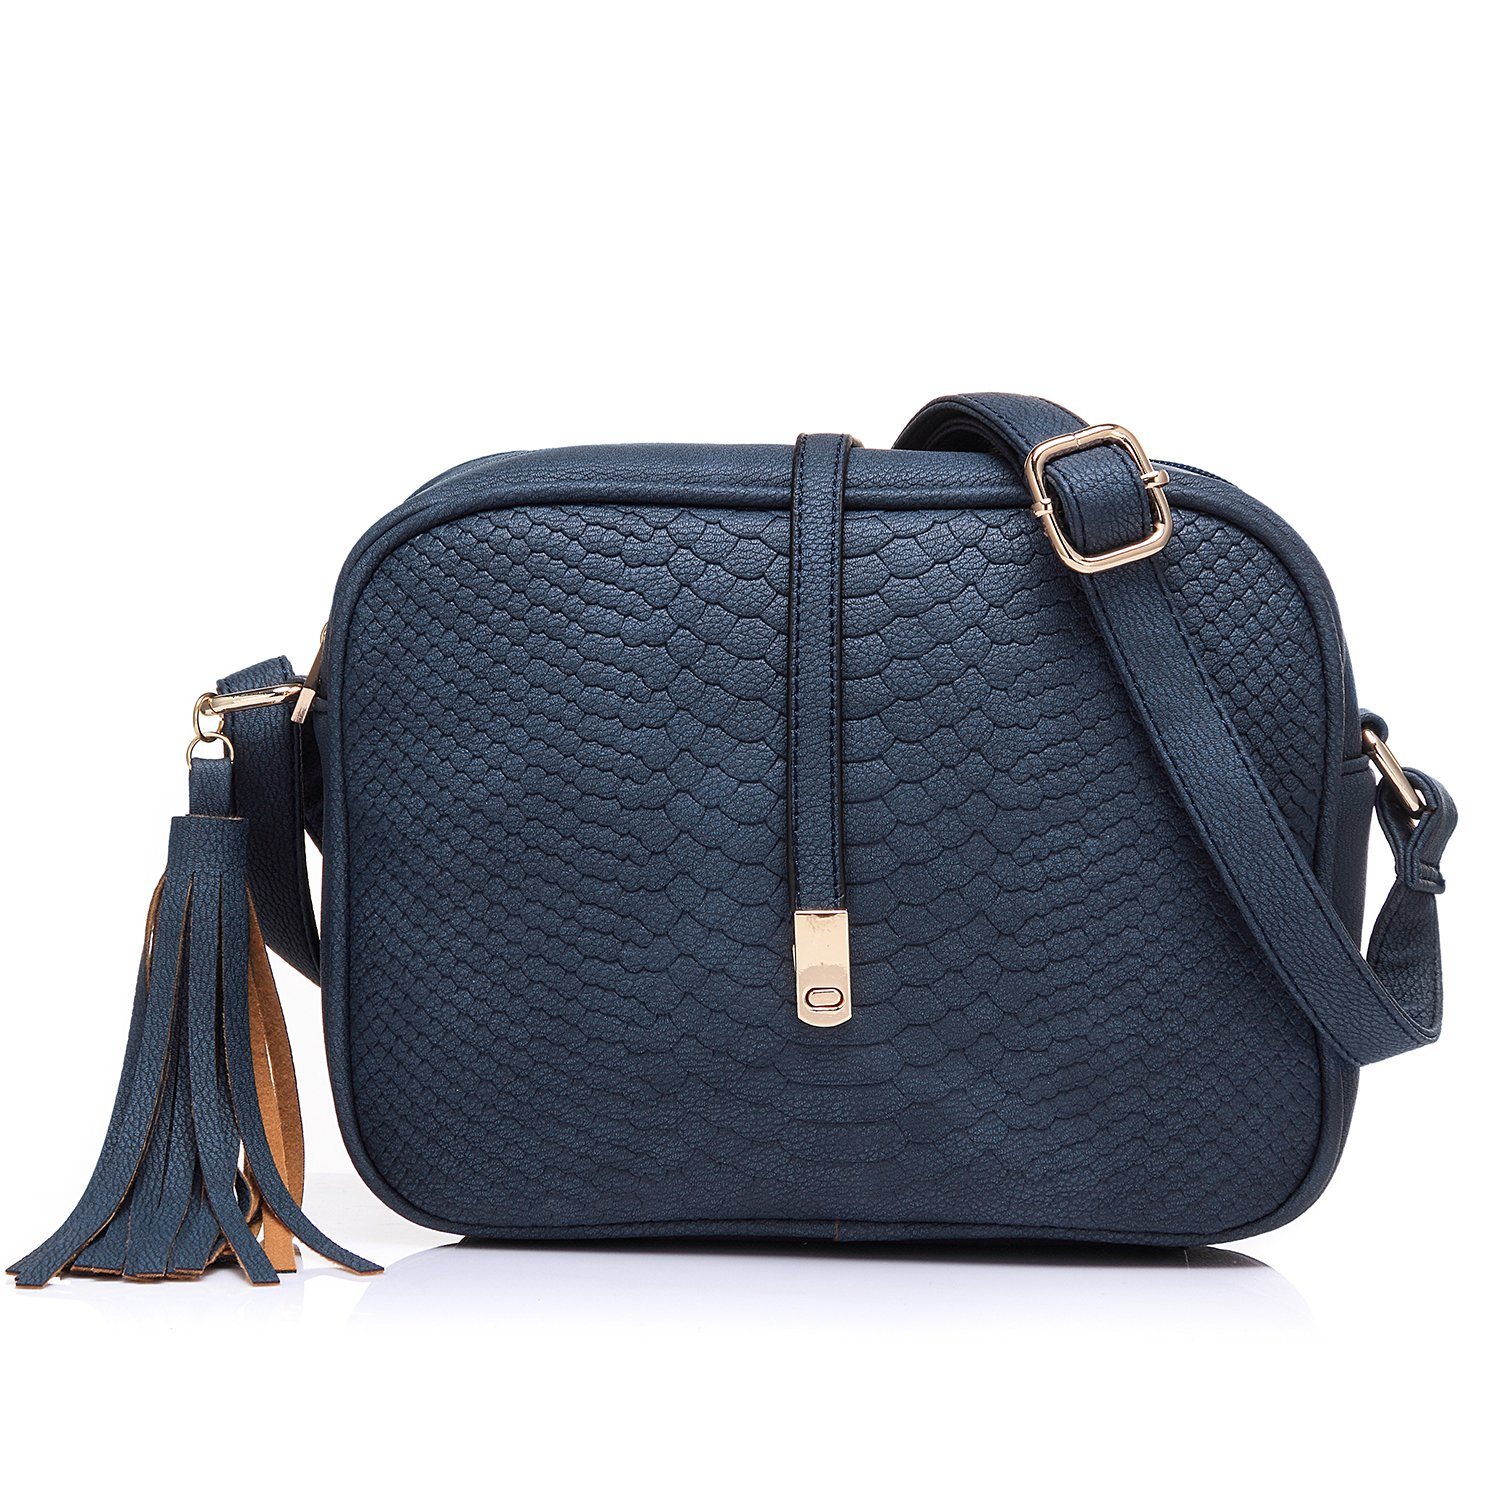 Small Crossbody Bags for Women Ladies Faux Leather Mini Shoulder Bag with Tassel Purse Blue